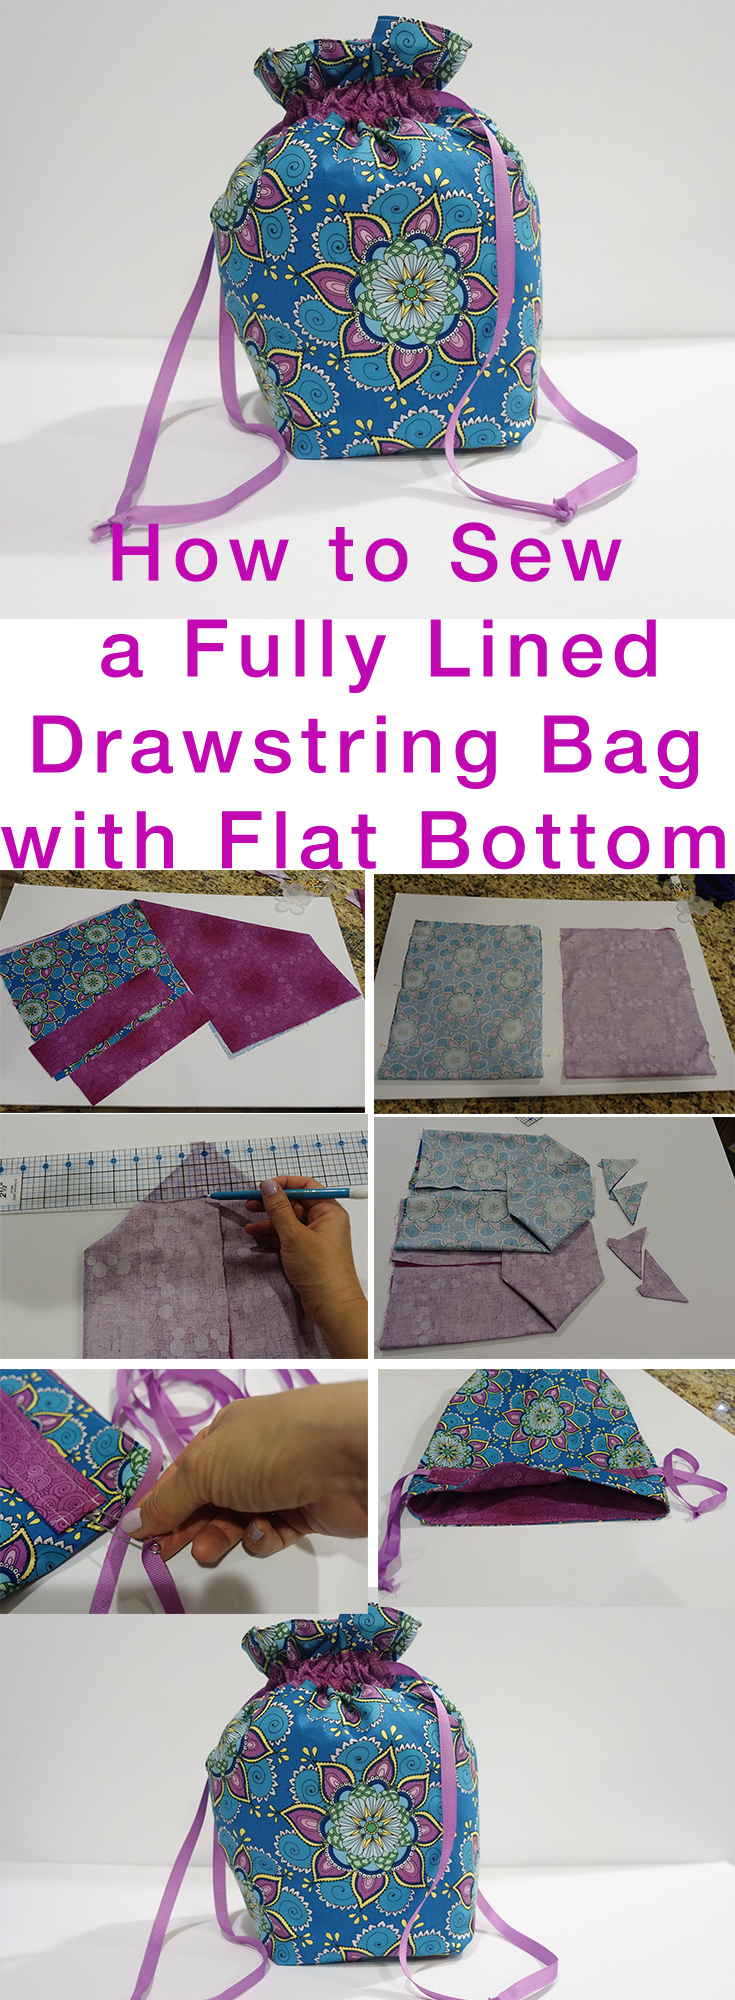 image regarding Dice Bag Printable Pattern referred to as How in the direction of Sew Totally Covered, Flat Bottomed, Drawstring Bag Absolutely free